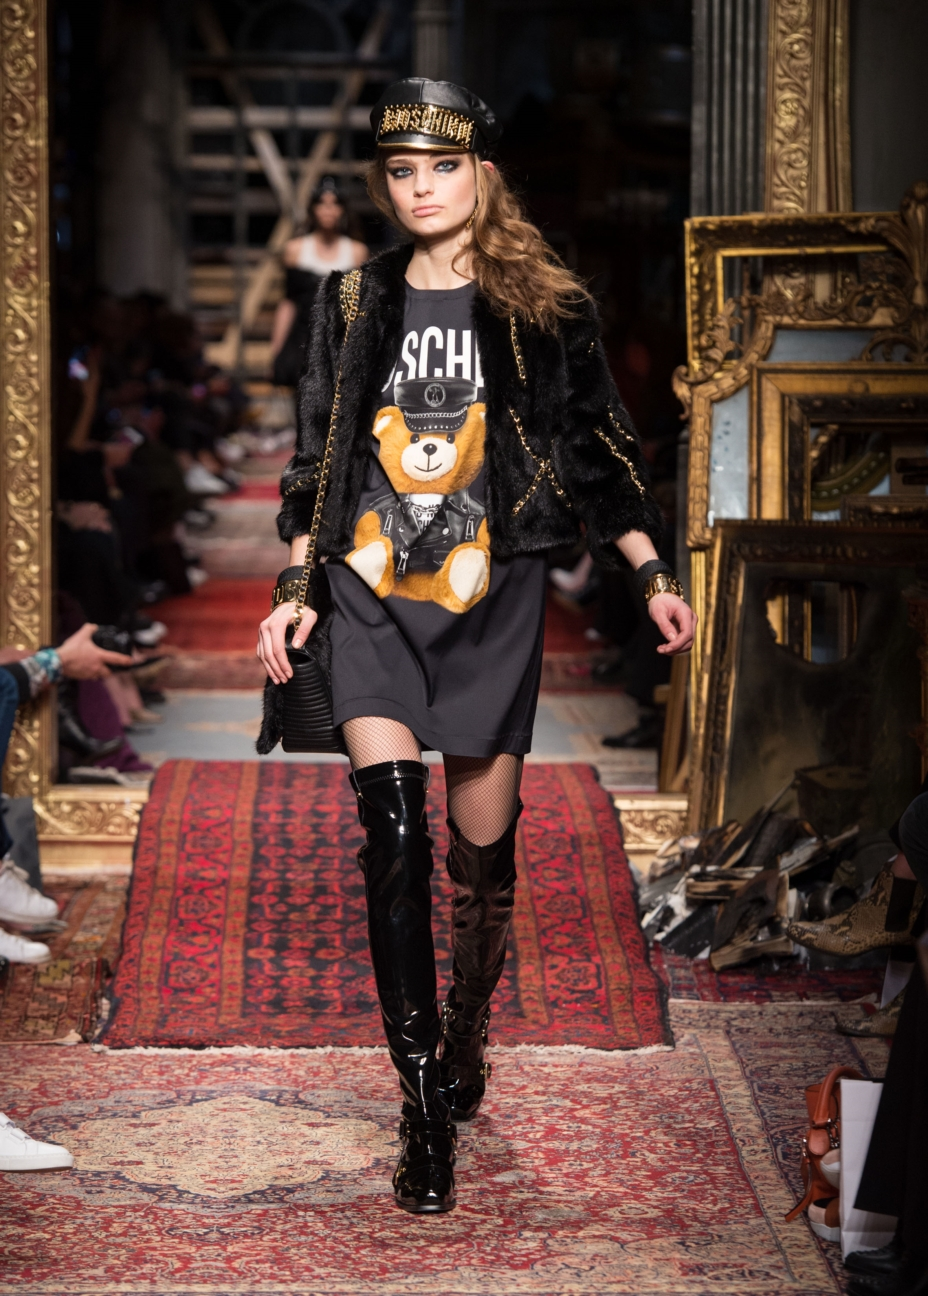 moschino-milan-fashion-week-aw-16-29